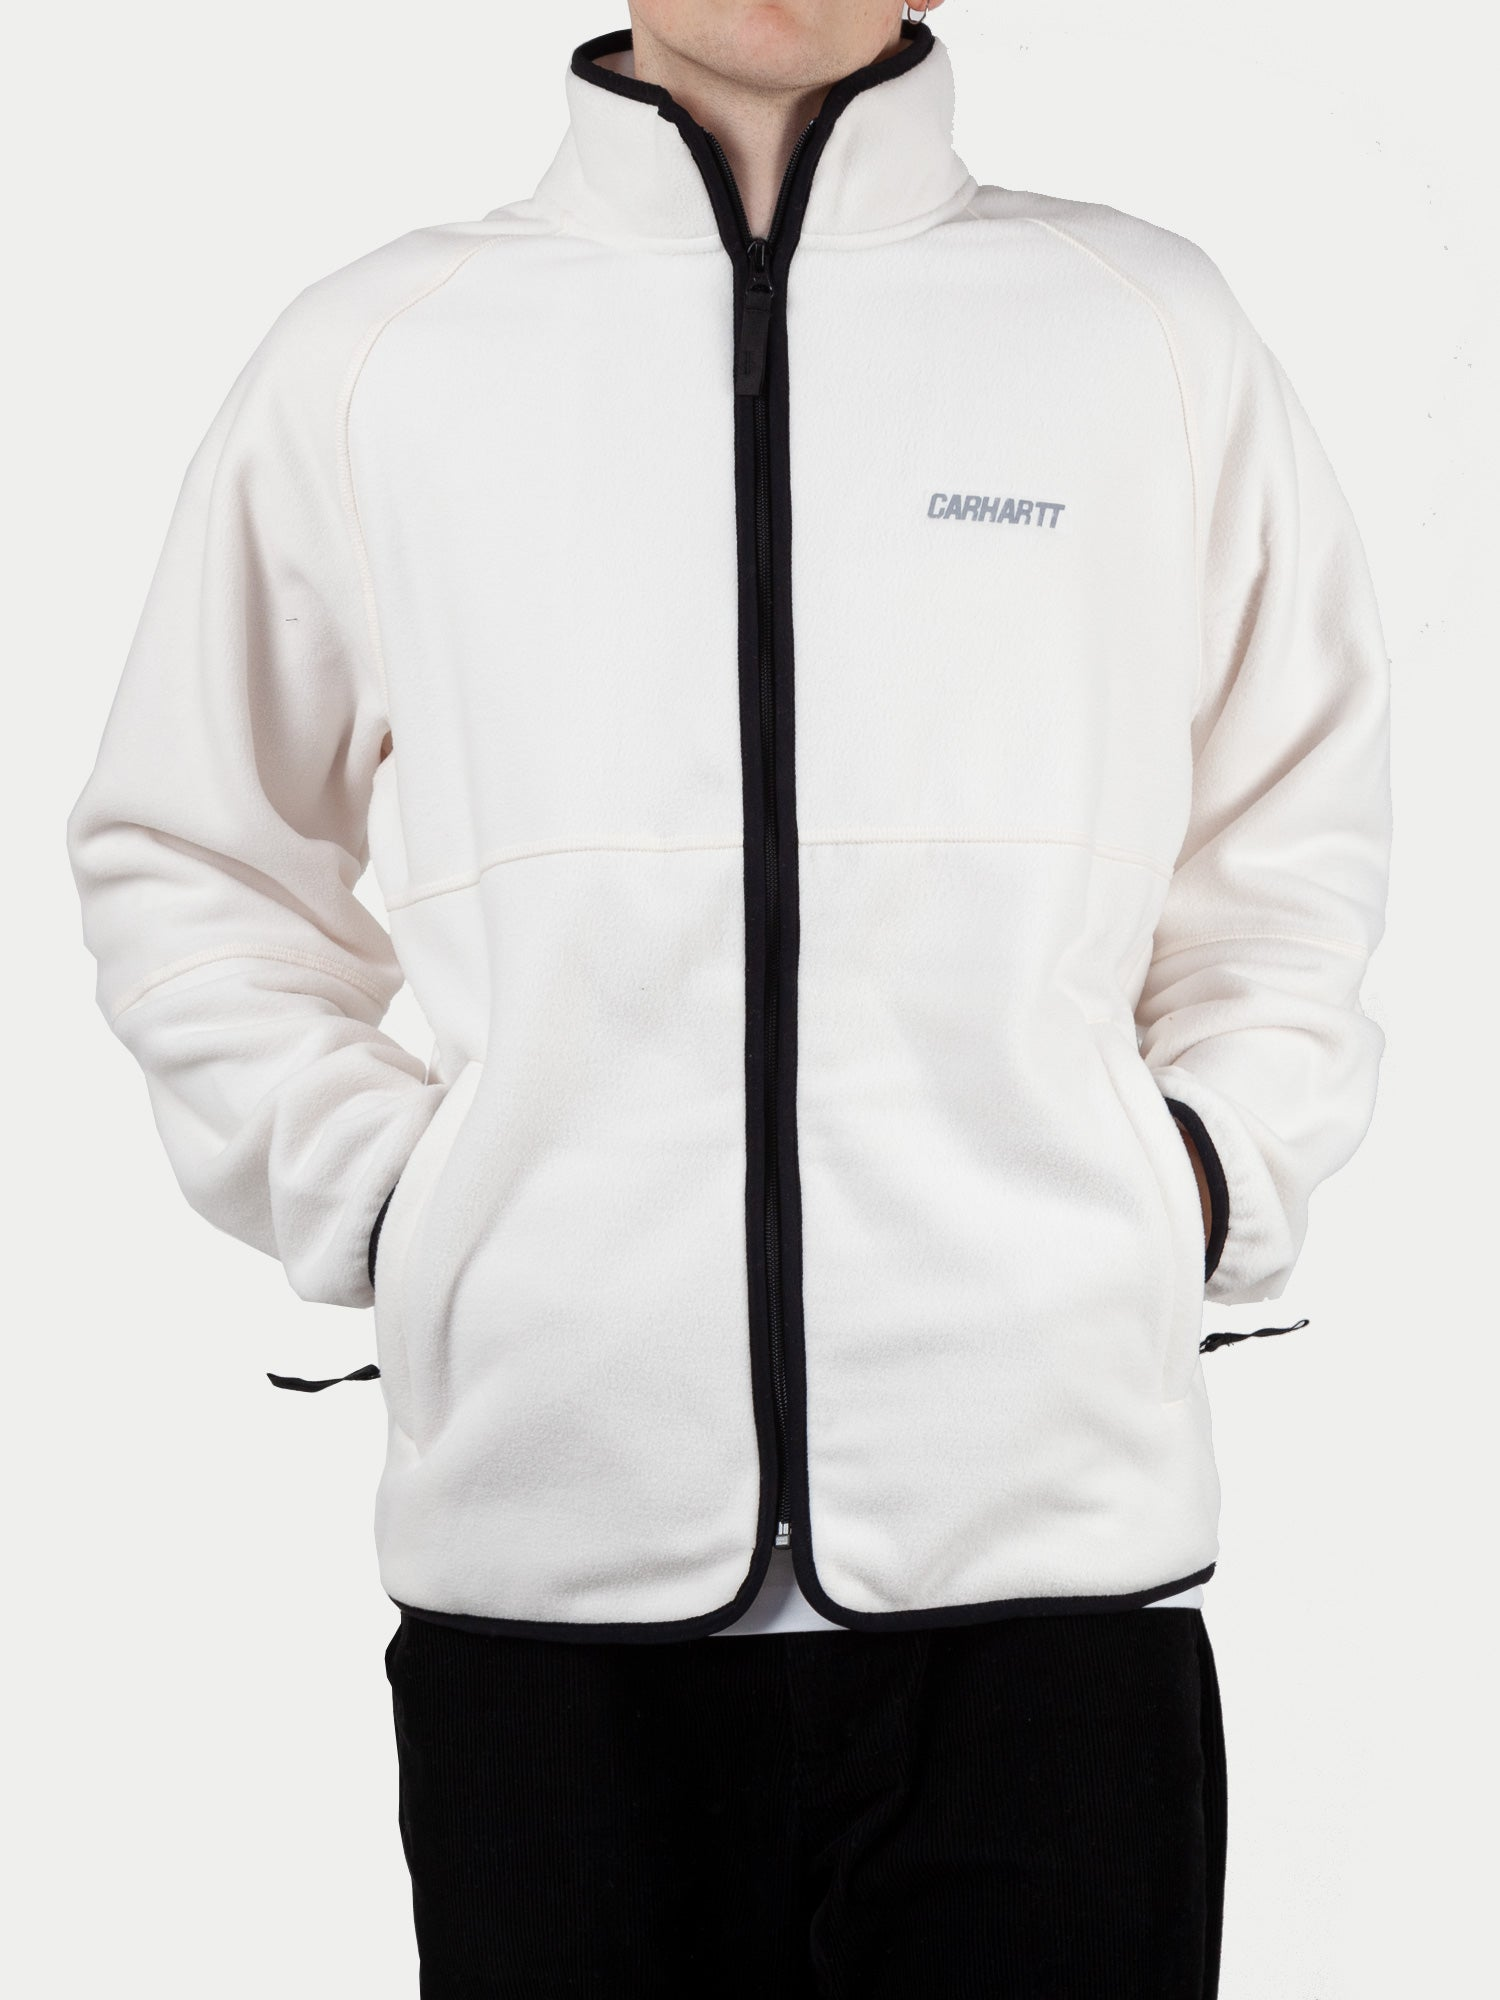 Carhartt Beaufort Jacket (Wax & Reflective Grey) m1